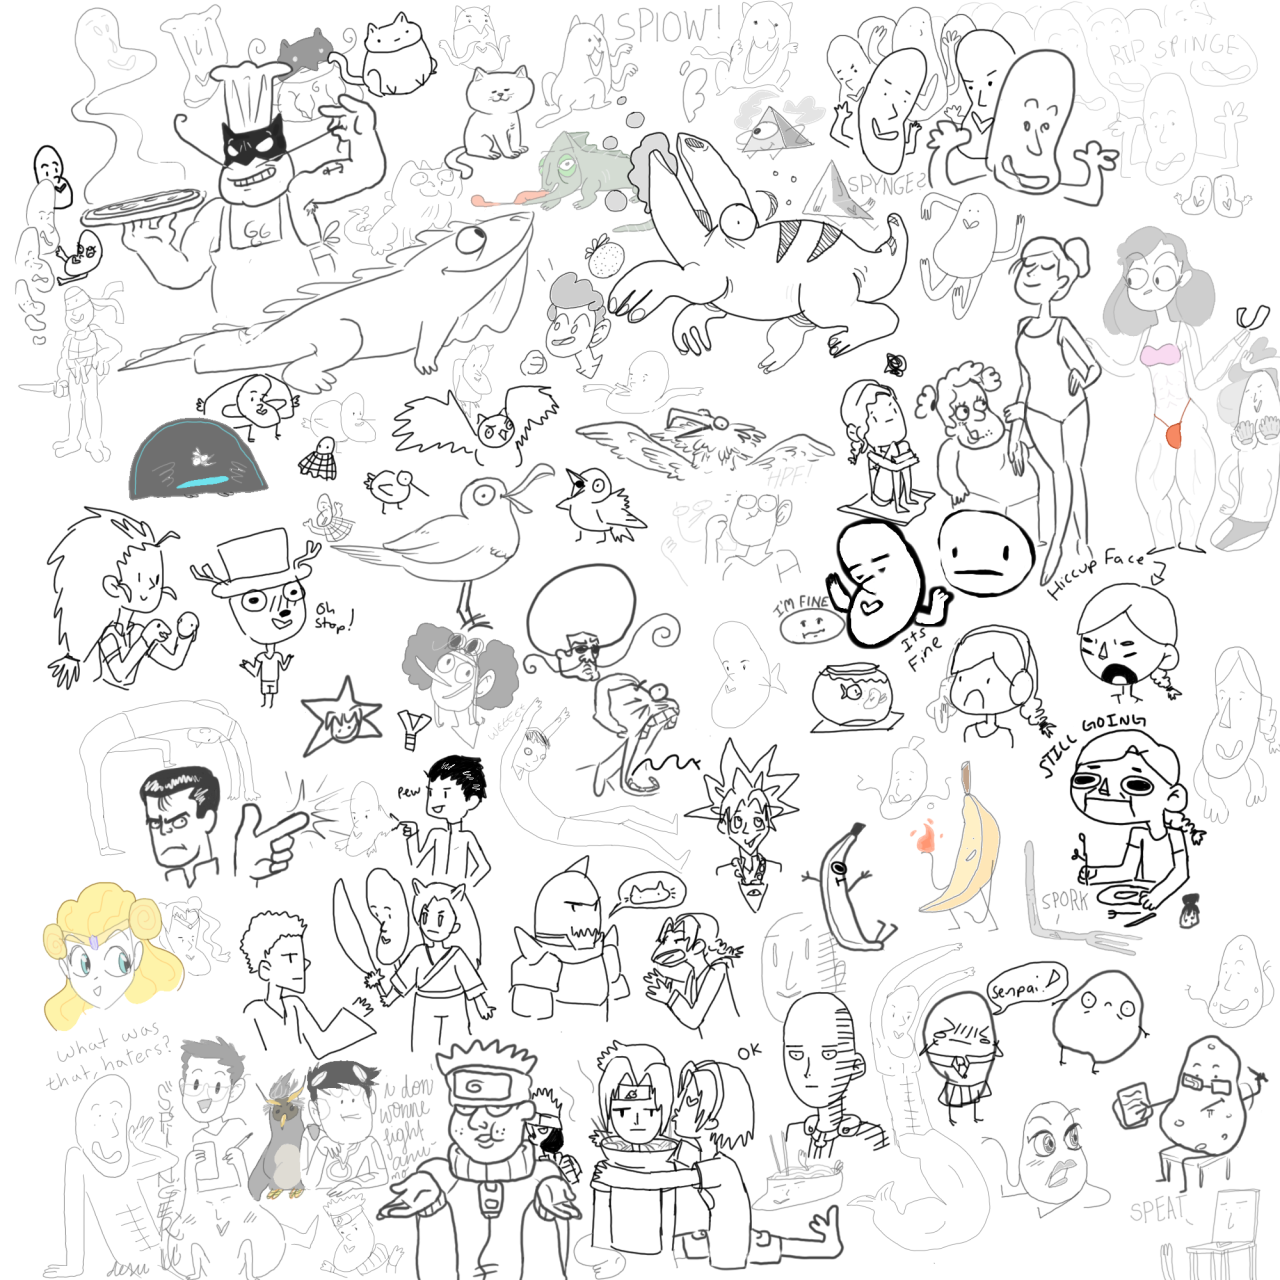 #353 is a bunch of HILARIOUS doodles from today's drawpile session with pals Tilman and Dan~  @chobs   @turtleco